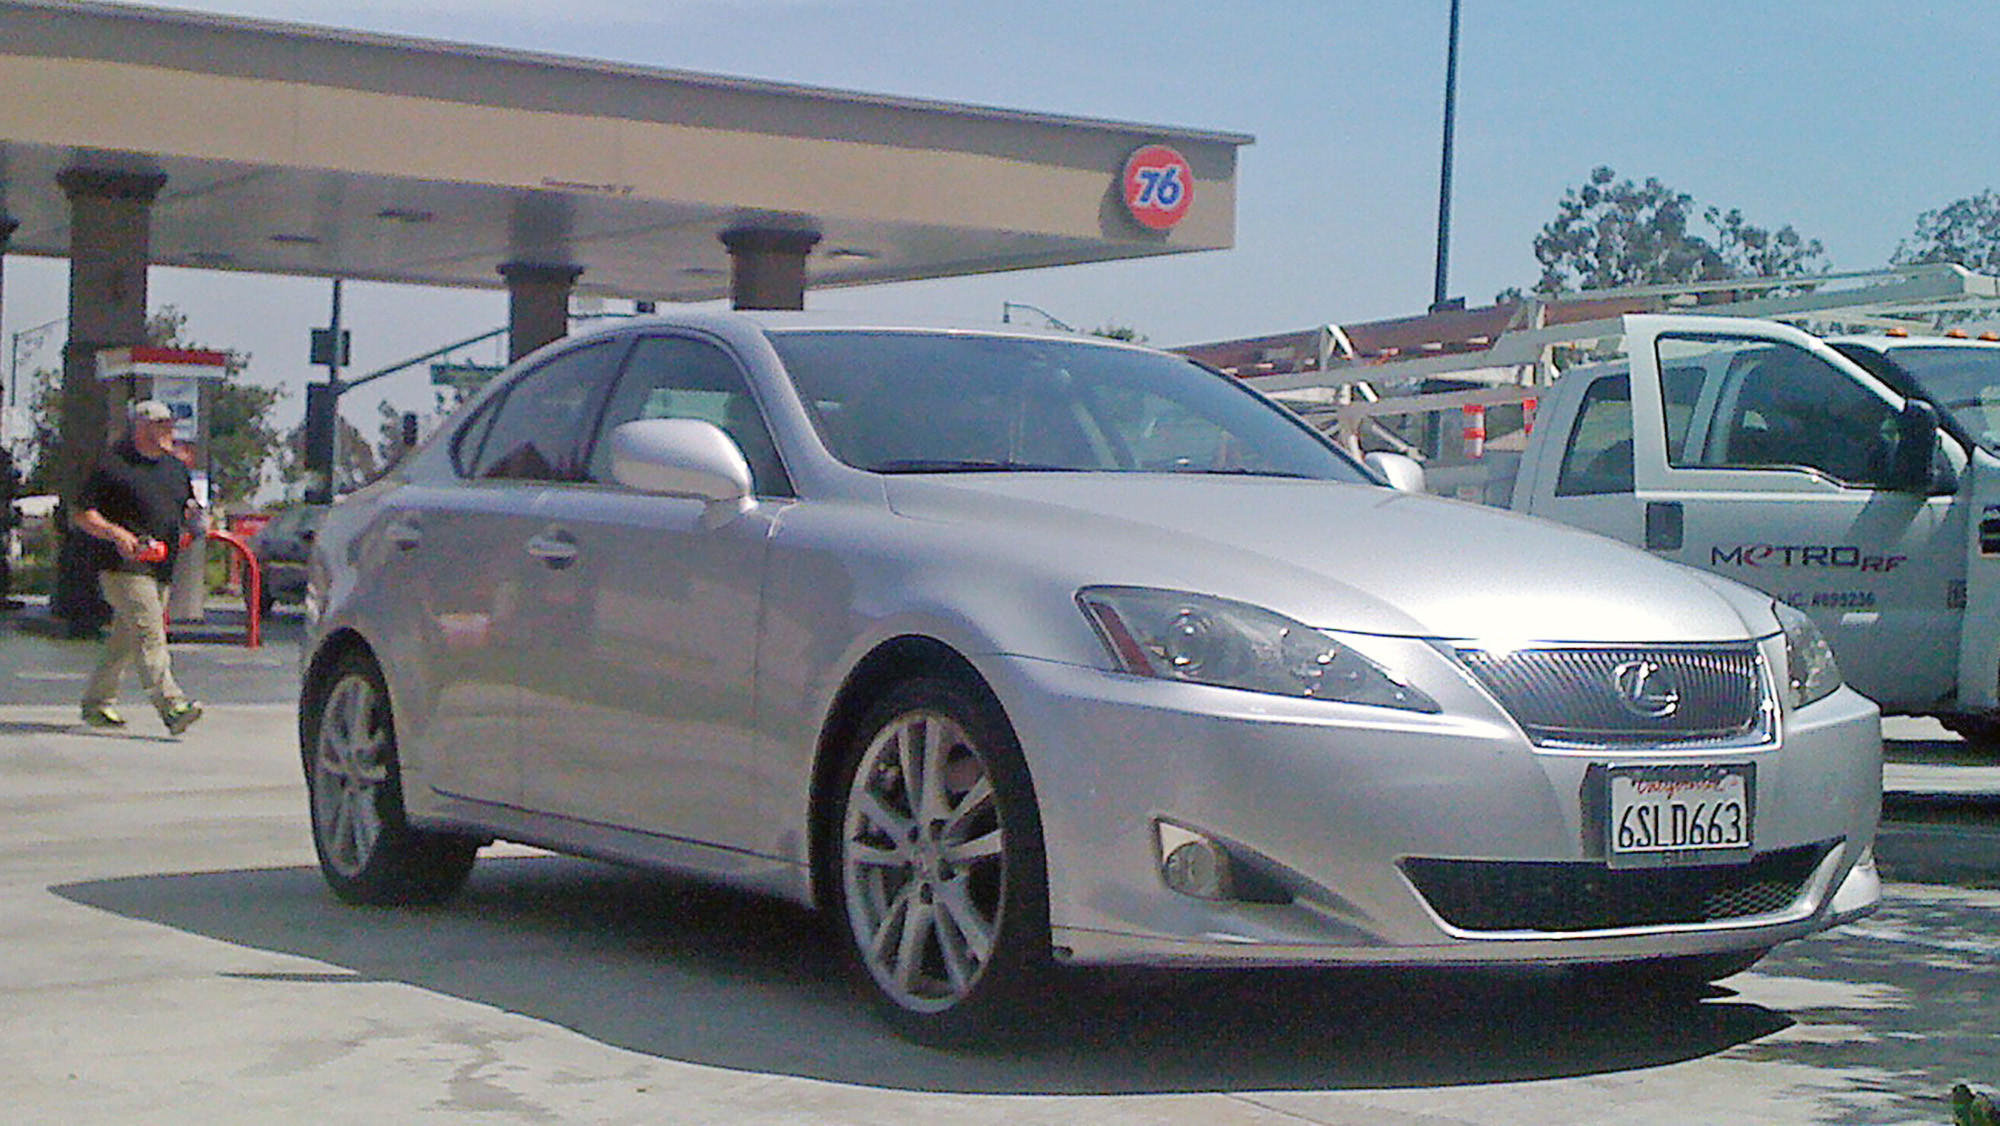 A Lexus driven by a man who was detained by police at gunpoint Wednesday, awaits retrieval outside the Union 76 gas station on Foothill Boulevard at Angeles Crest Highway.